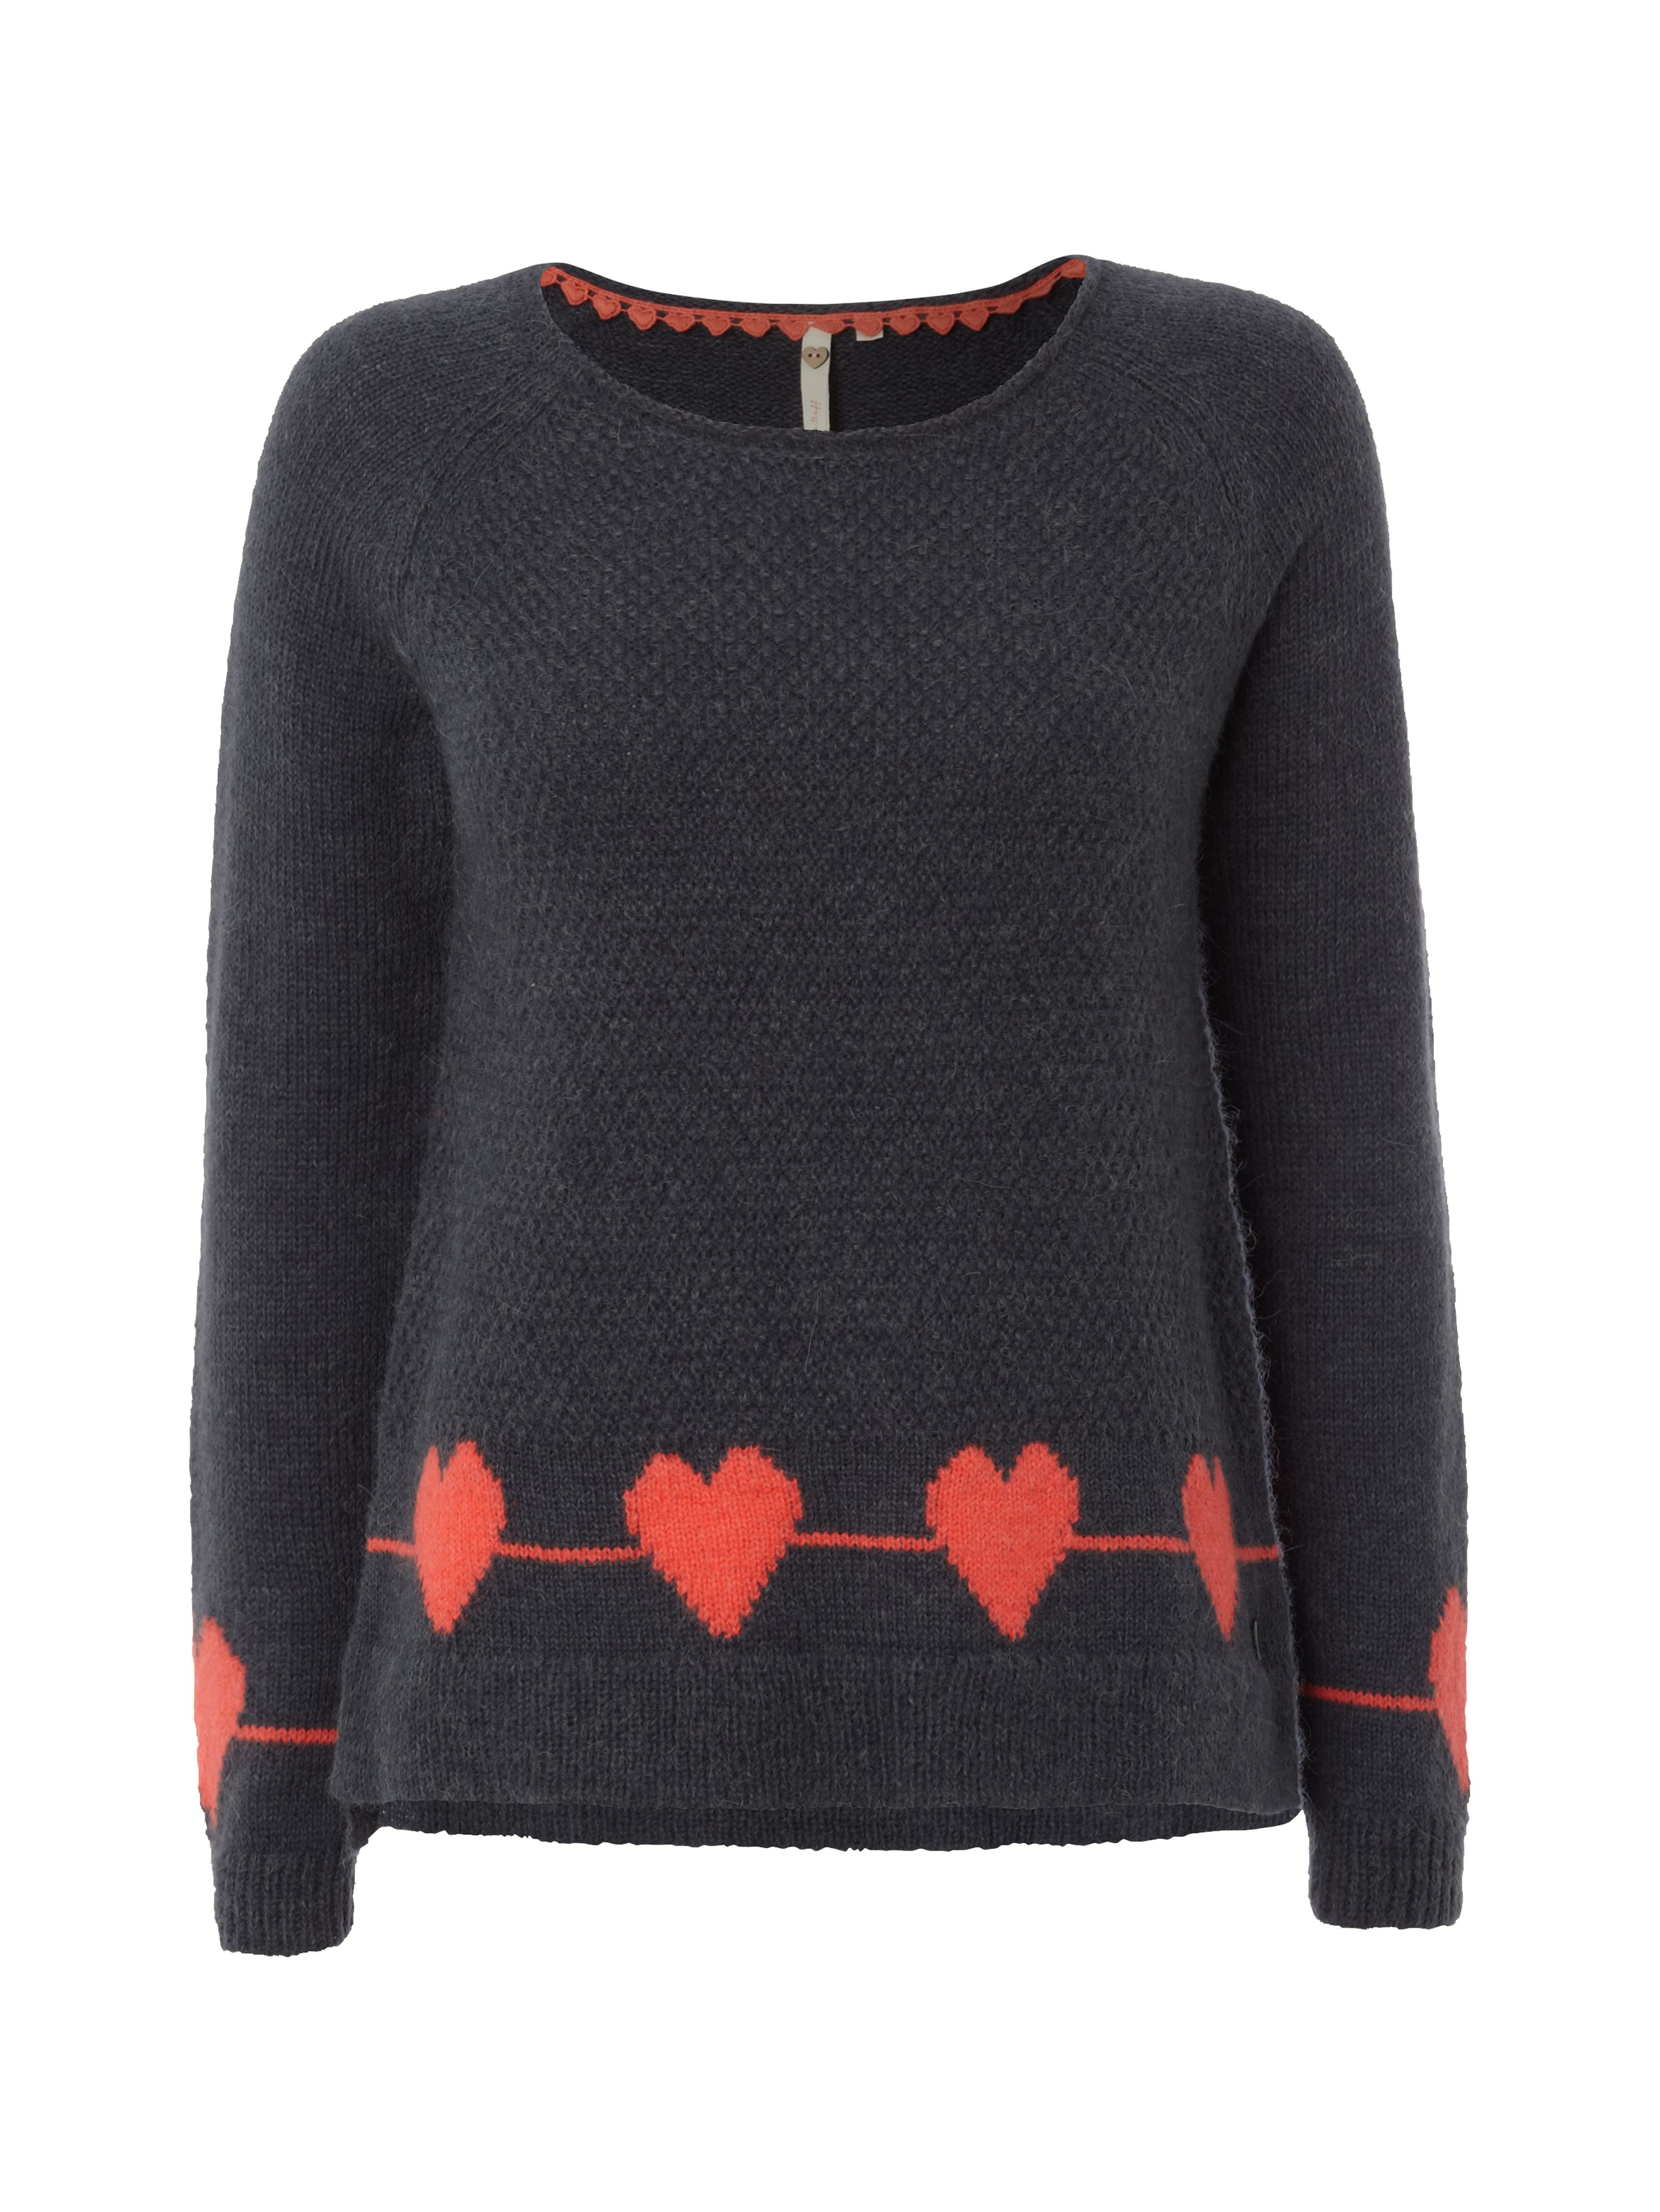 Country heart jumper